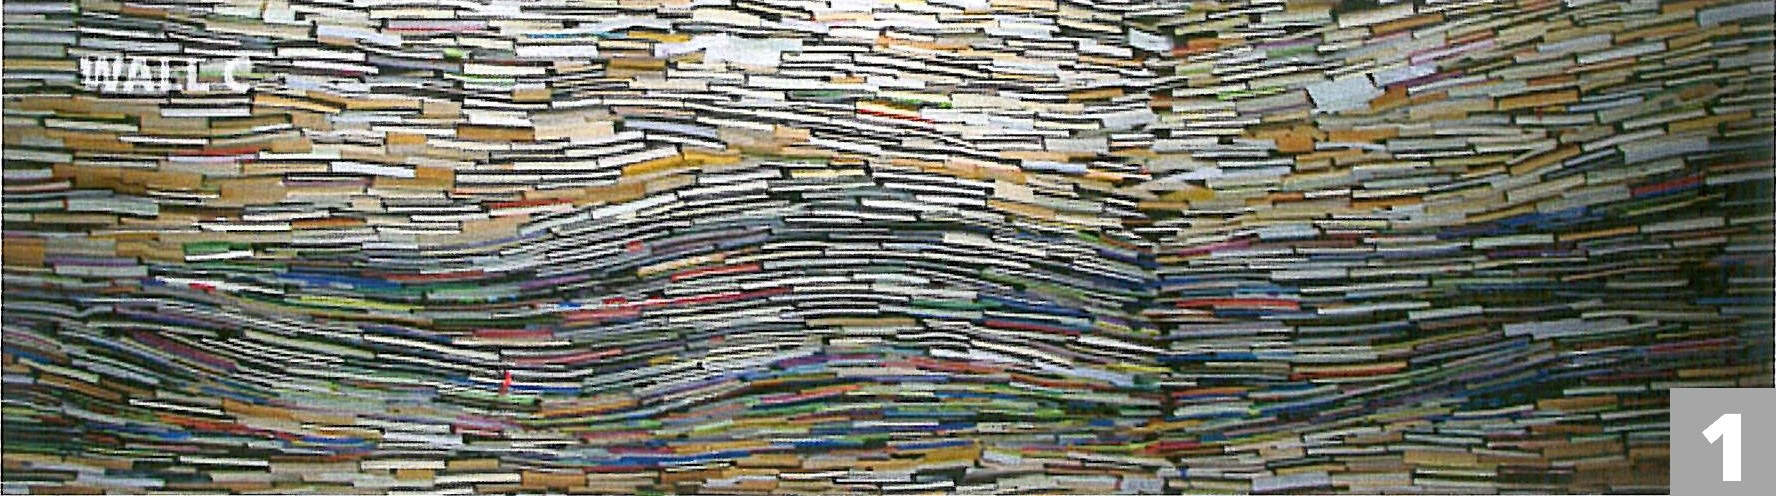 Stacked books form a wavy pattern